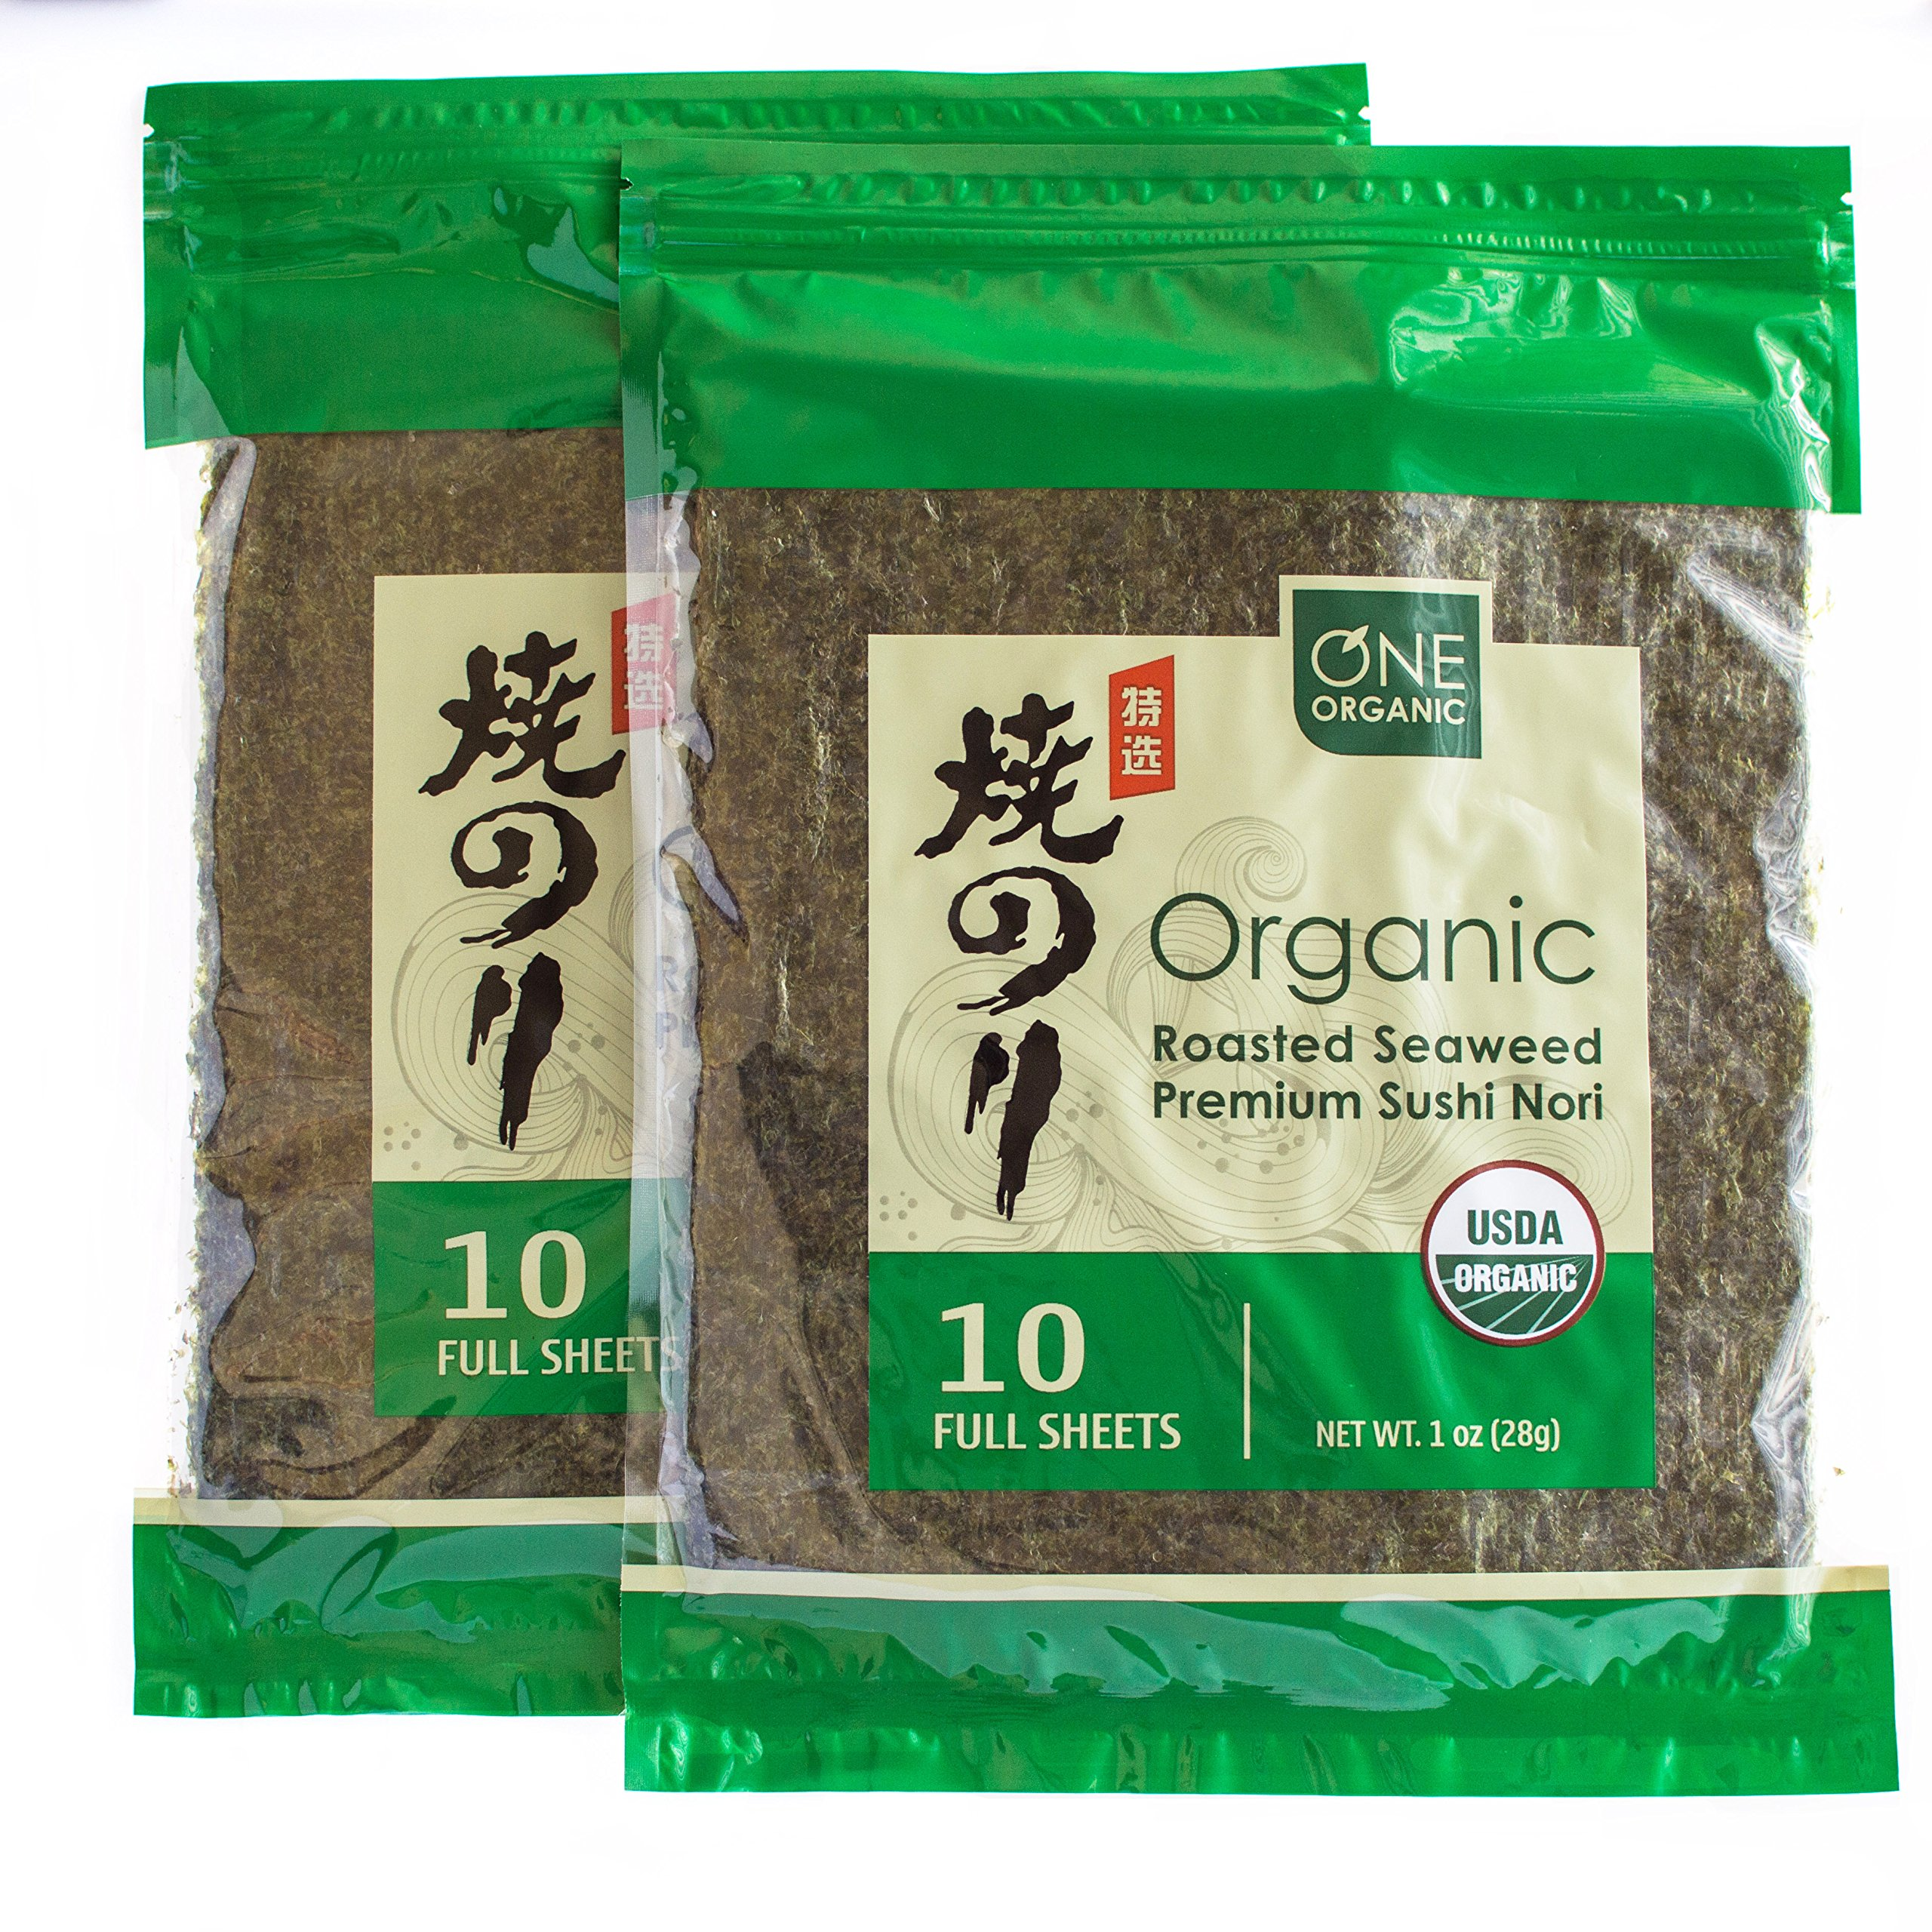 ONE ORGANIC ROASTED SEAWEED (10 sheets/2 pack)